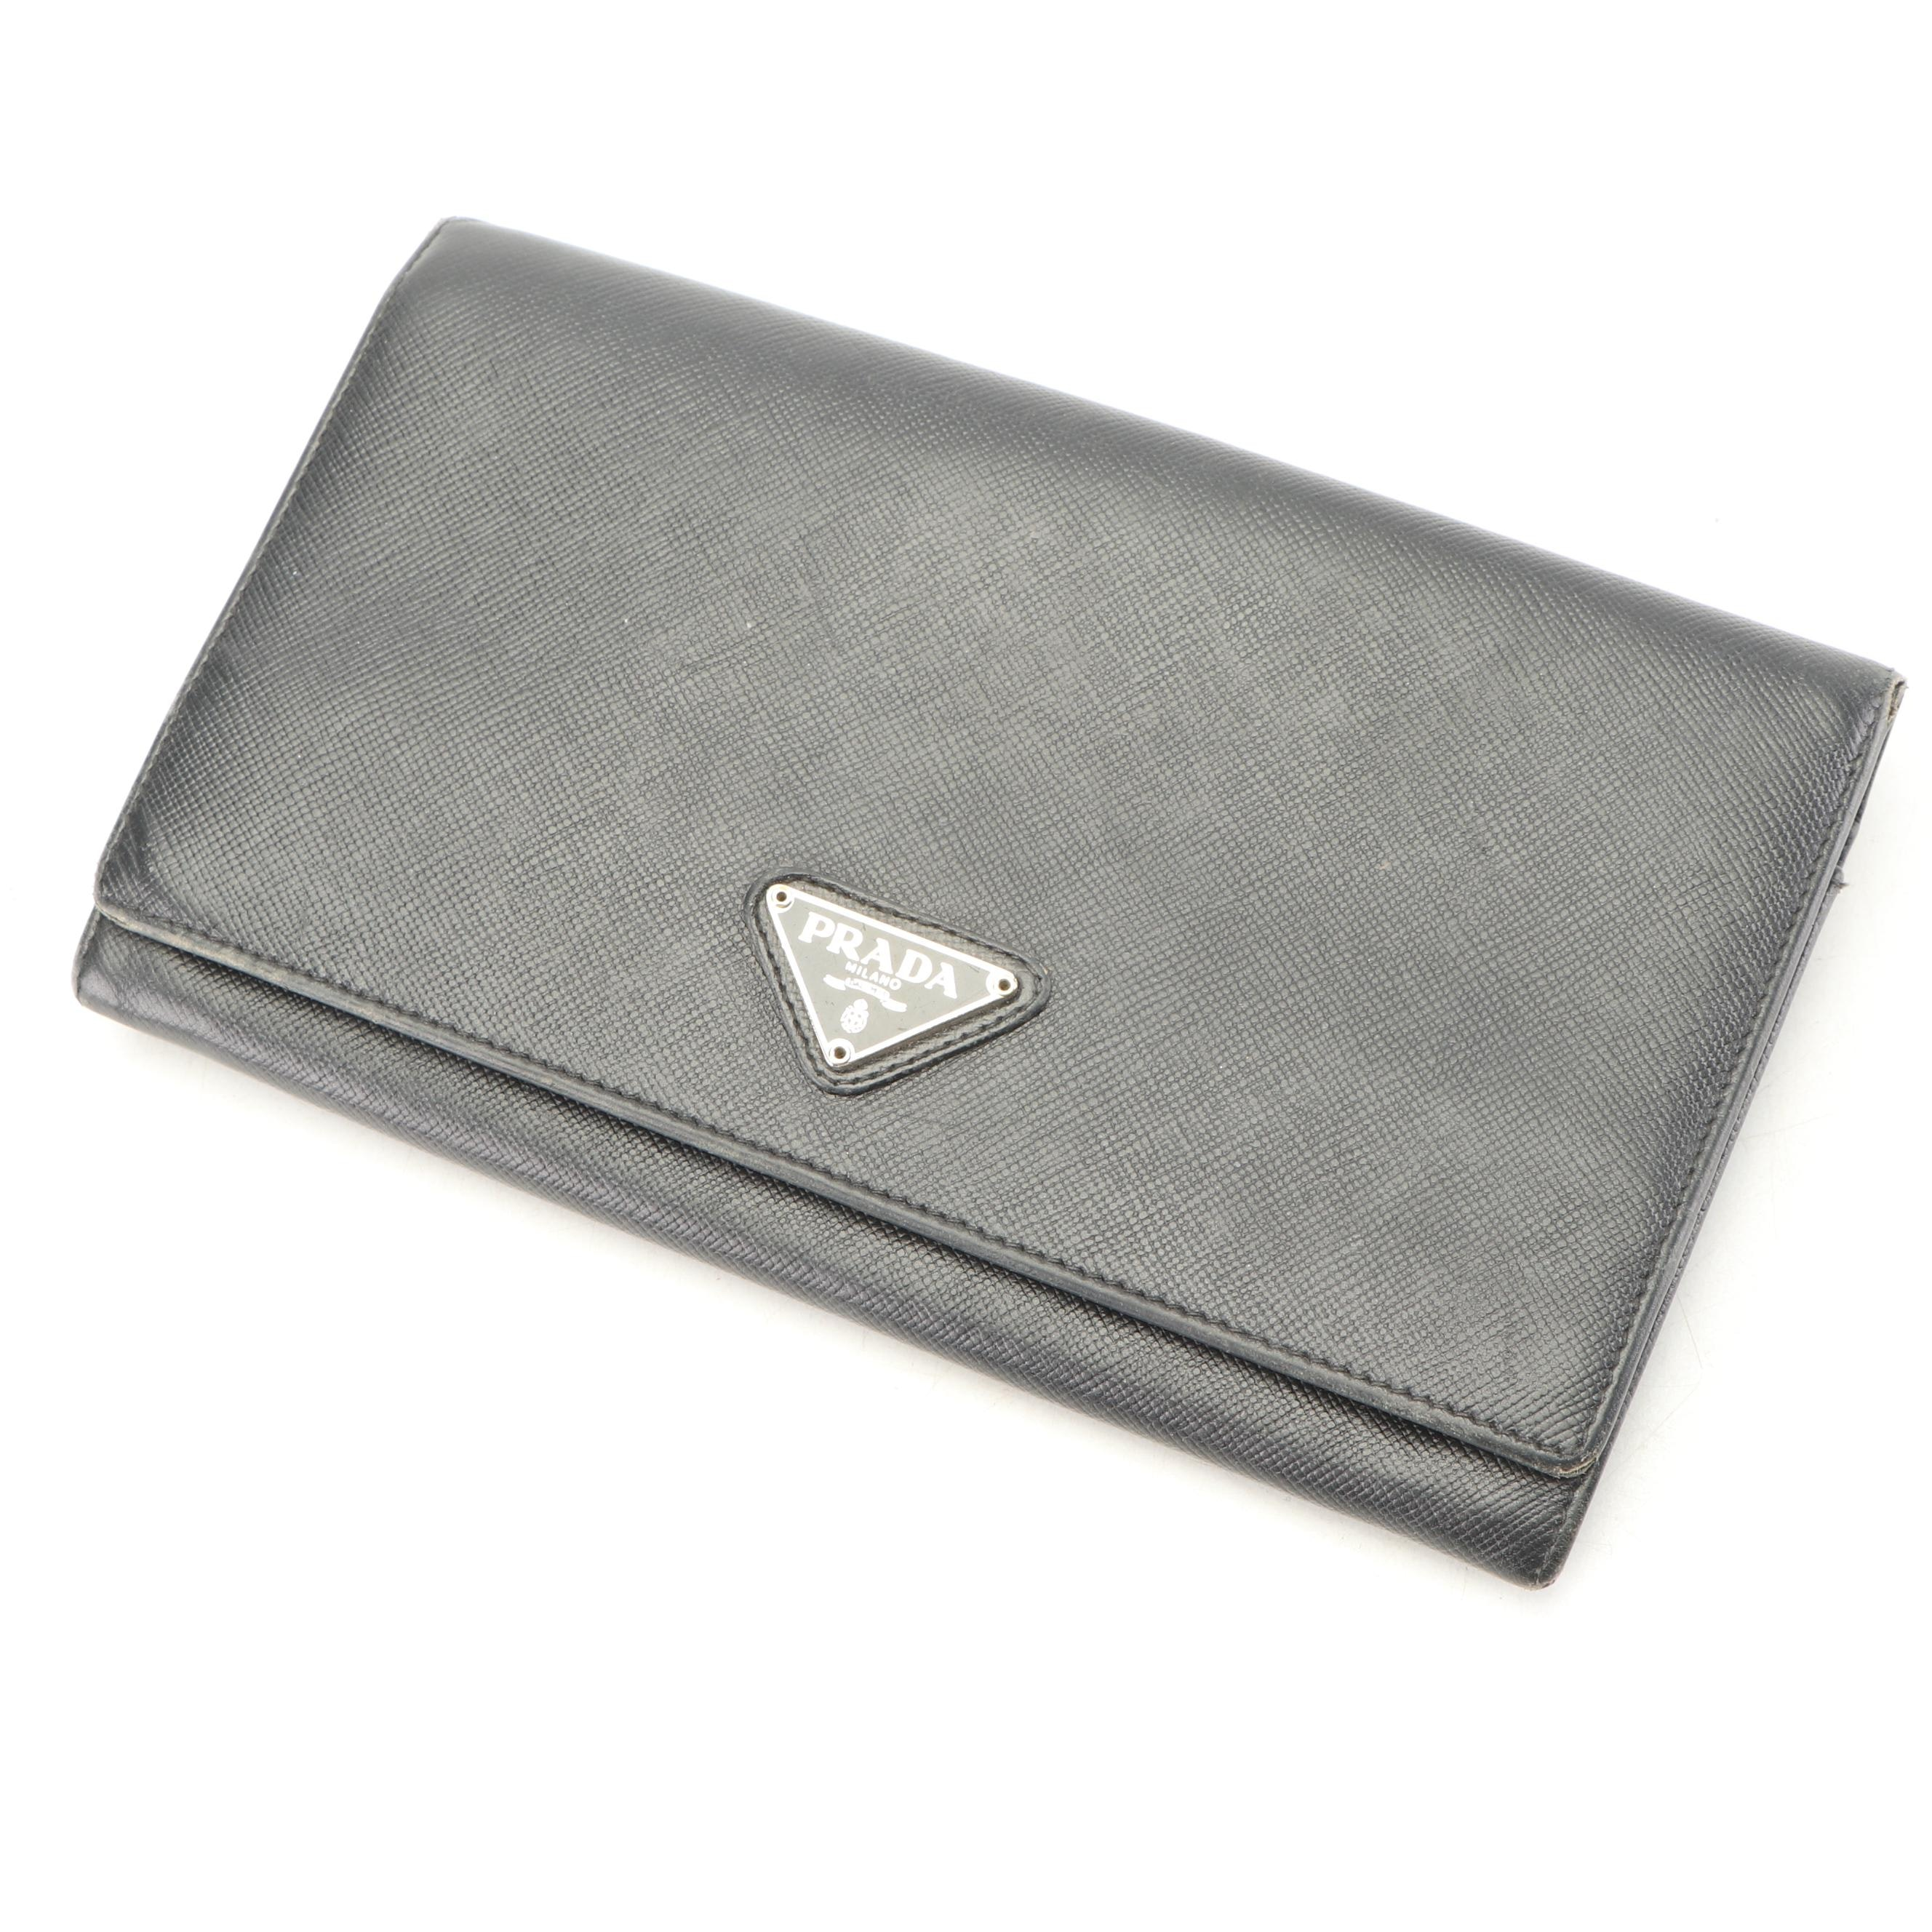 Prada Black Saffiano Leather Wallet, Made in Italy